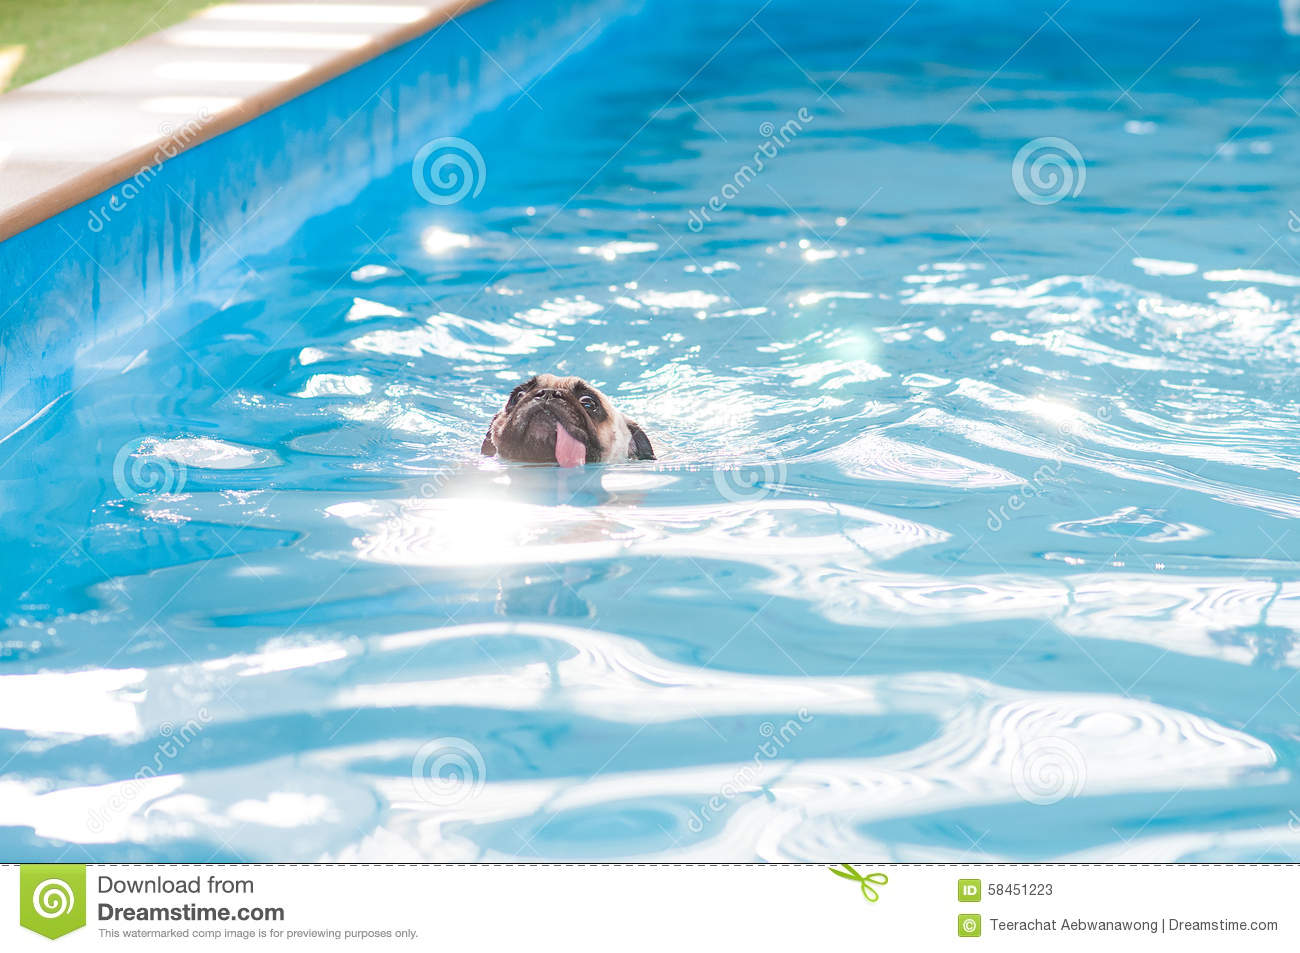 Dog On Pool Float Stock Image 69163129